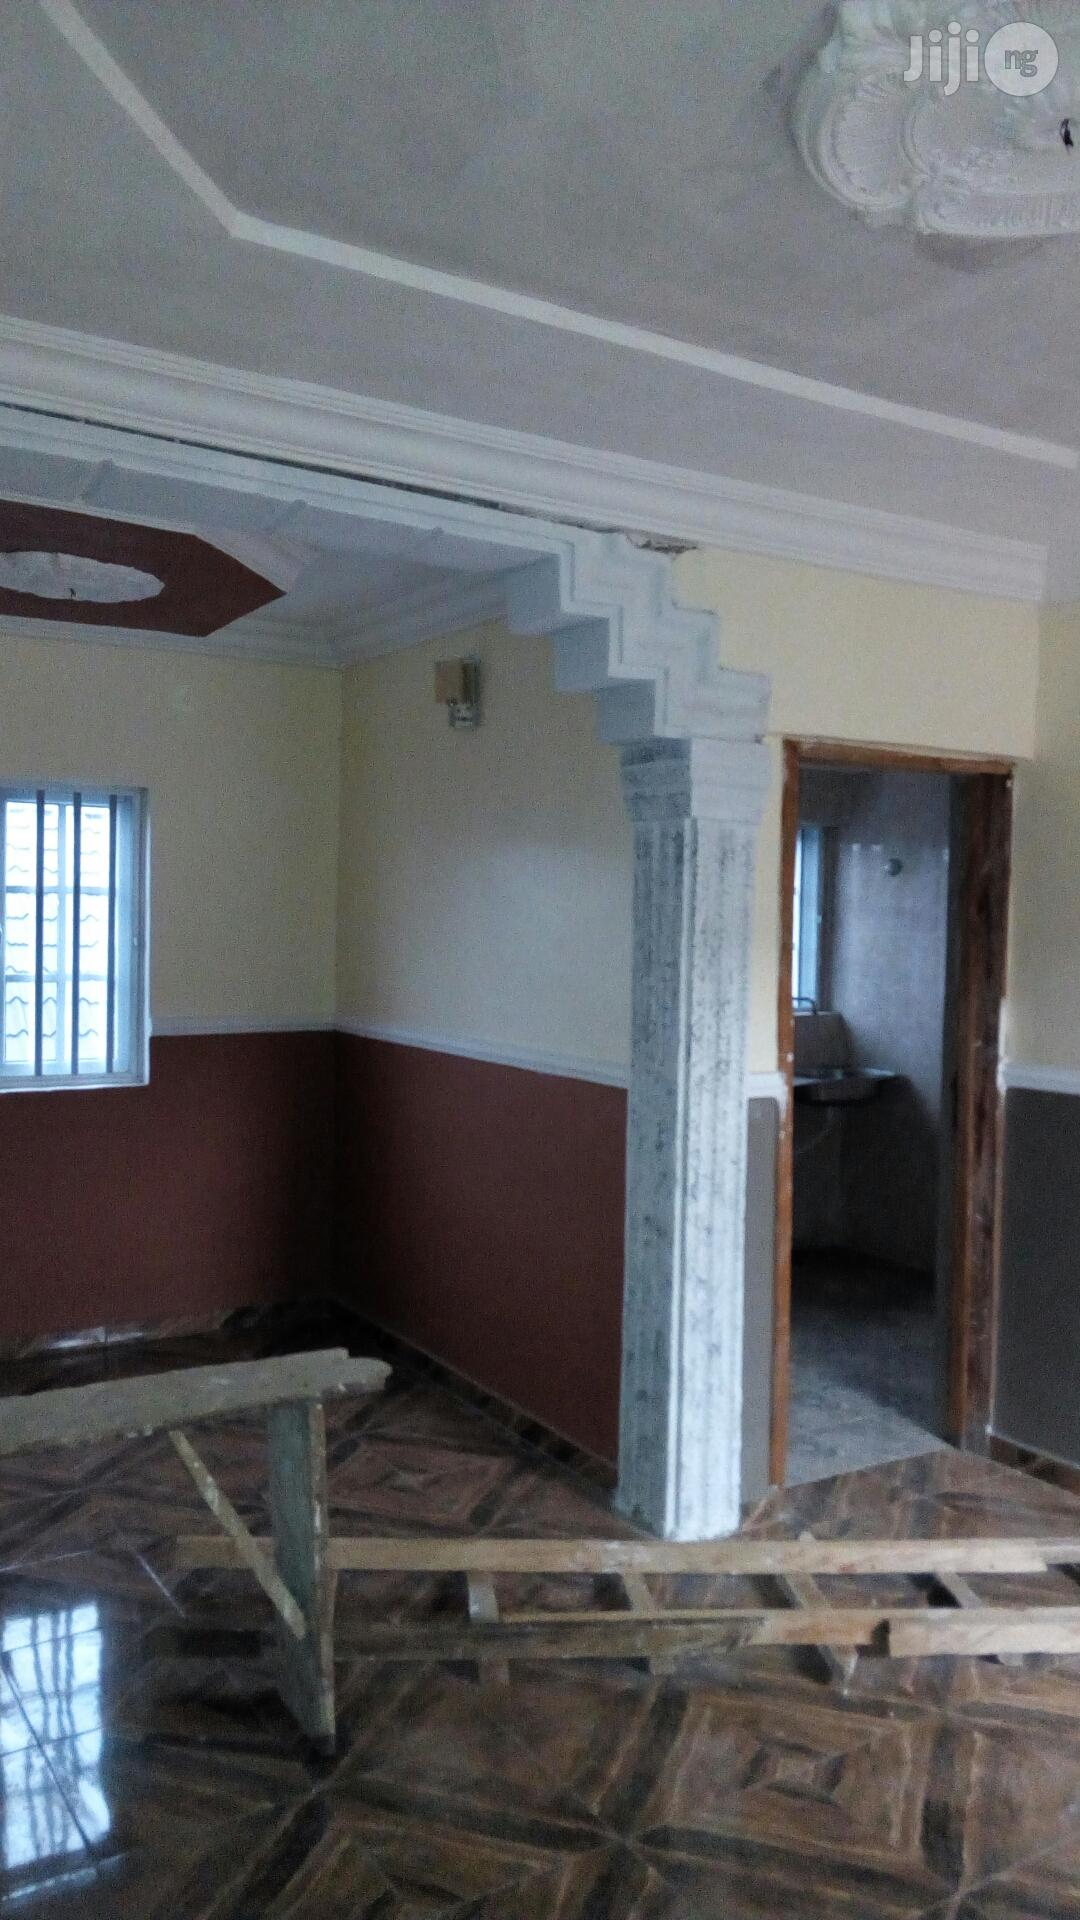 Newly Built Two 2 Bedroom Flat For Rent. | Houses & Apartments For Rent for sale in Agege, Lagos State, Nigeria